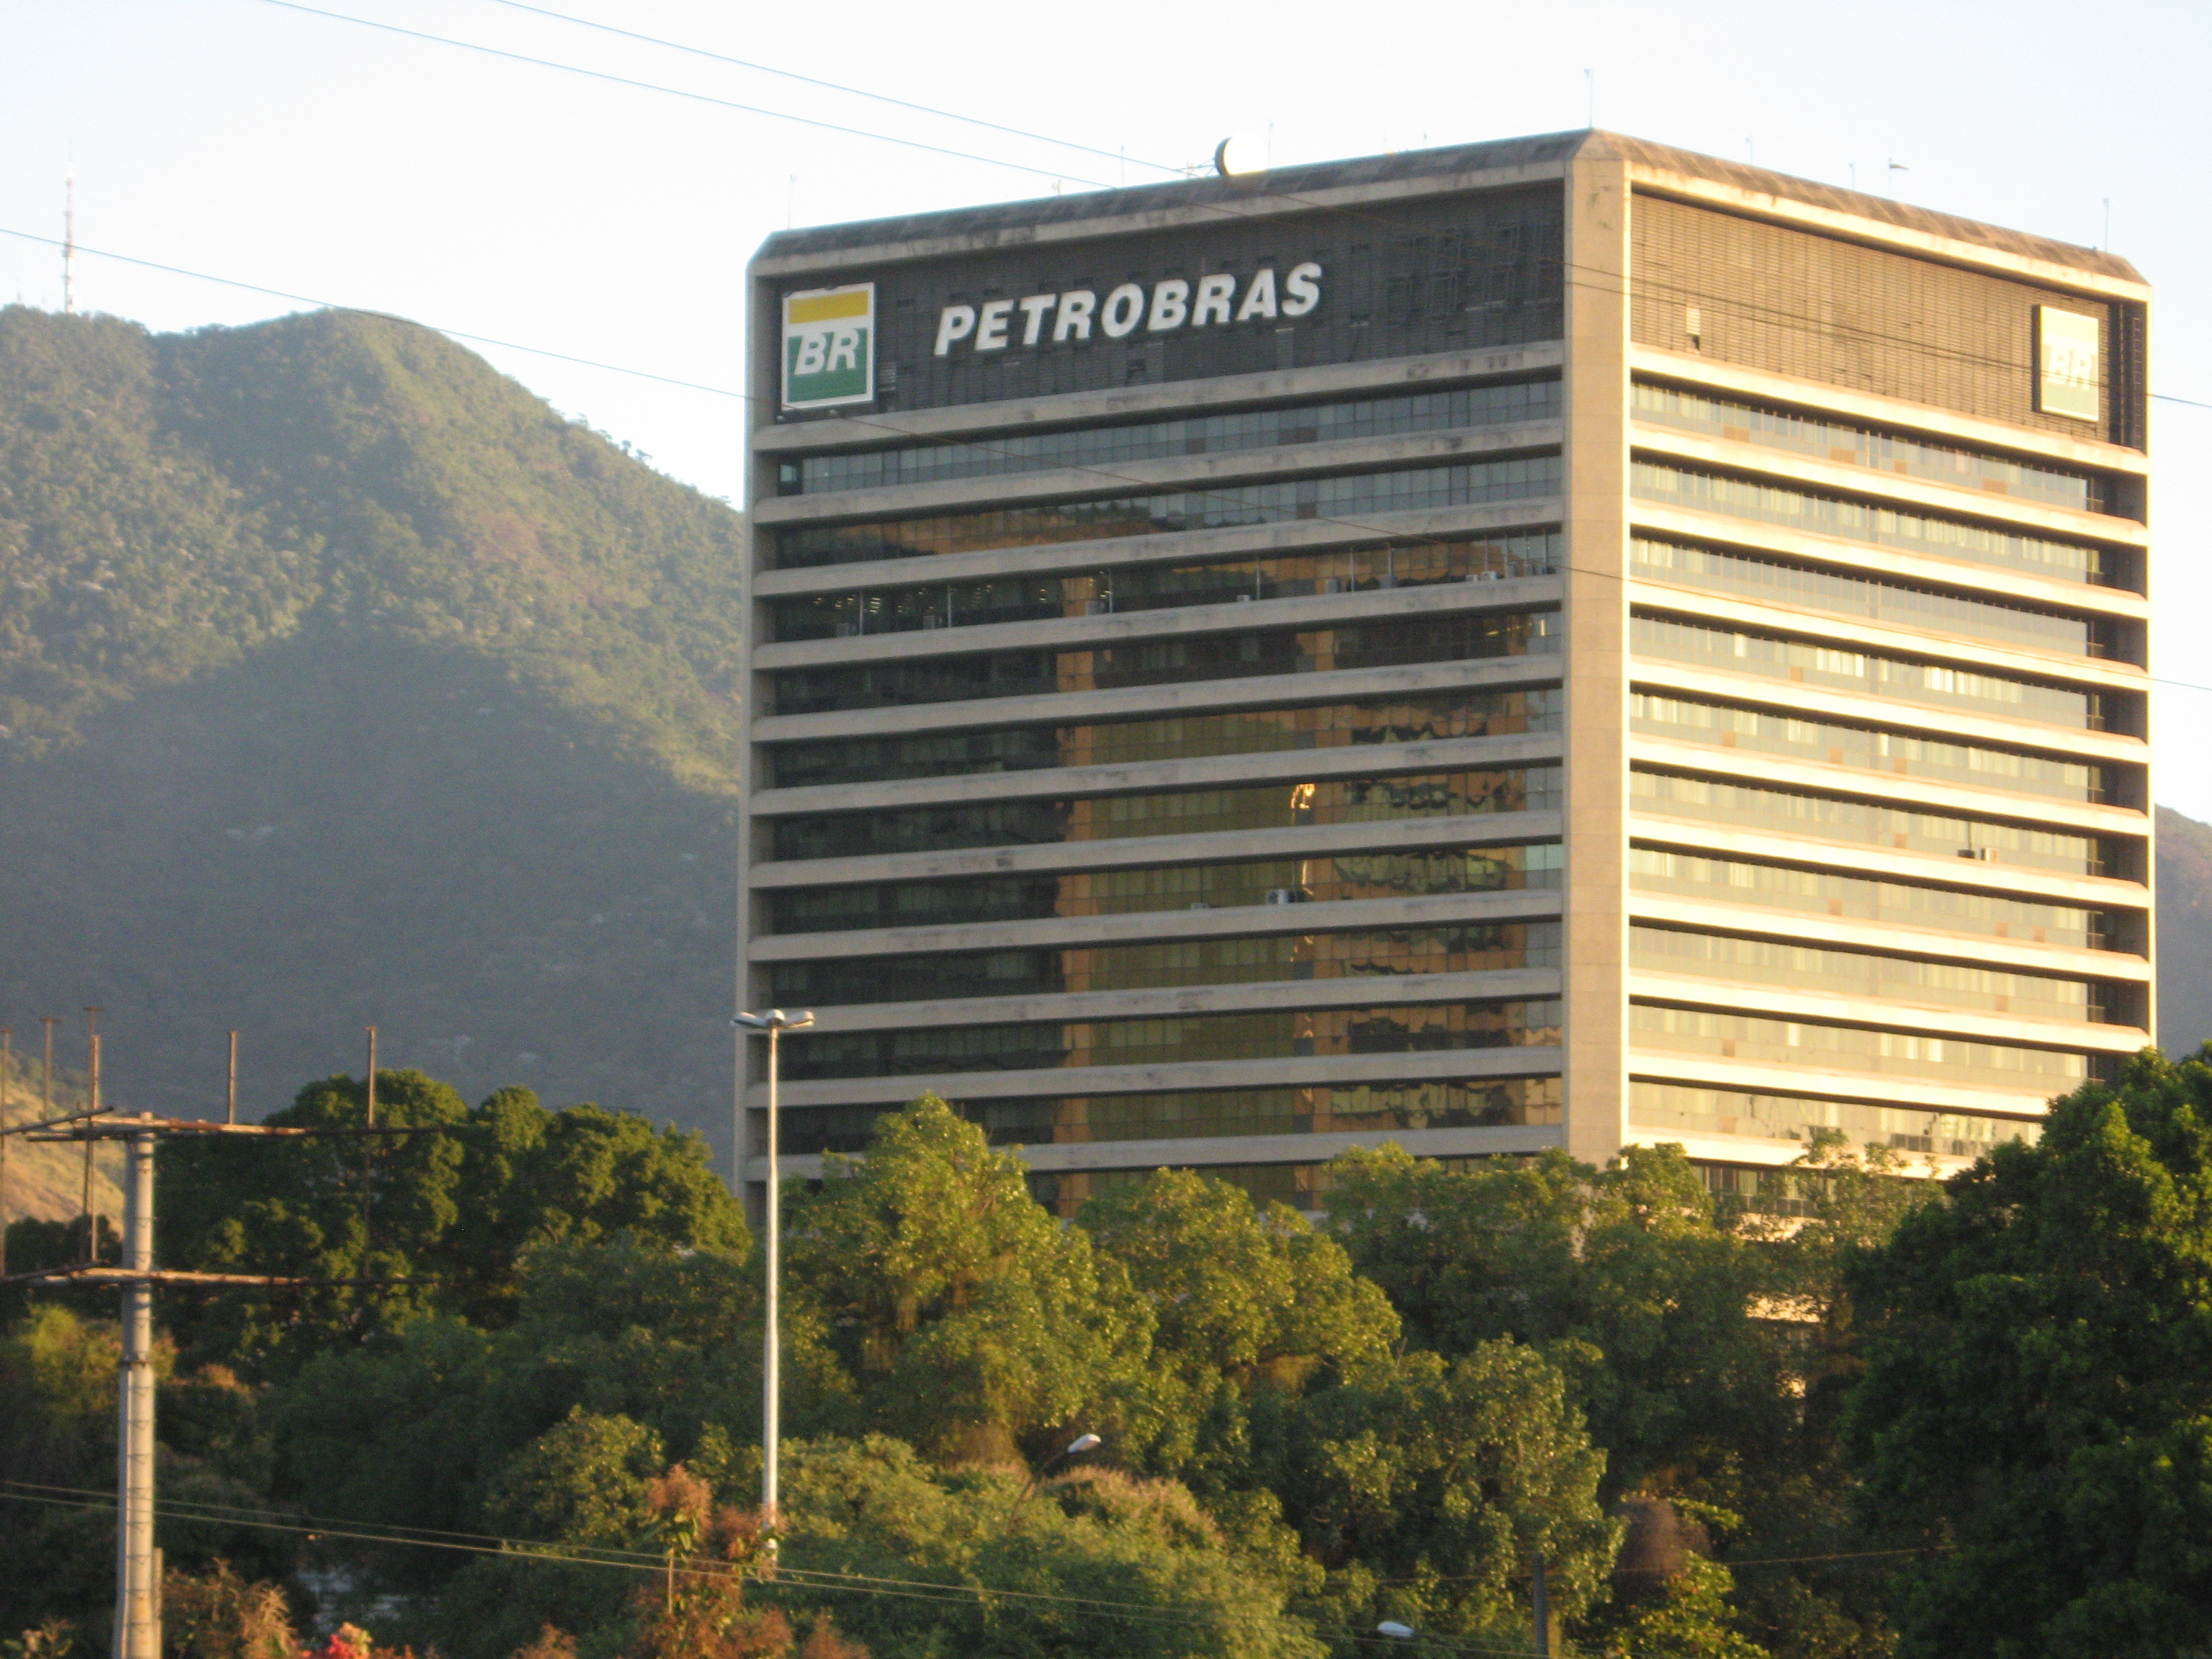 Petrobrás announces profit of R$ 5,3 billion and closes quarter with R$ 68,2 billion in cash